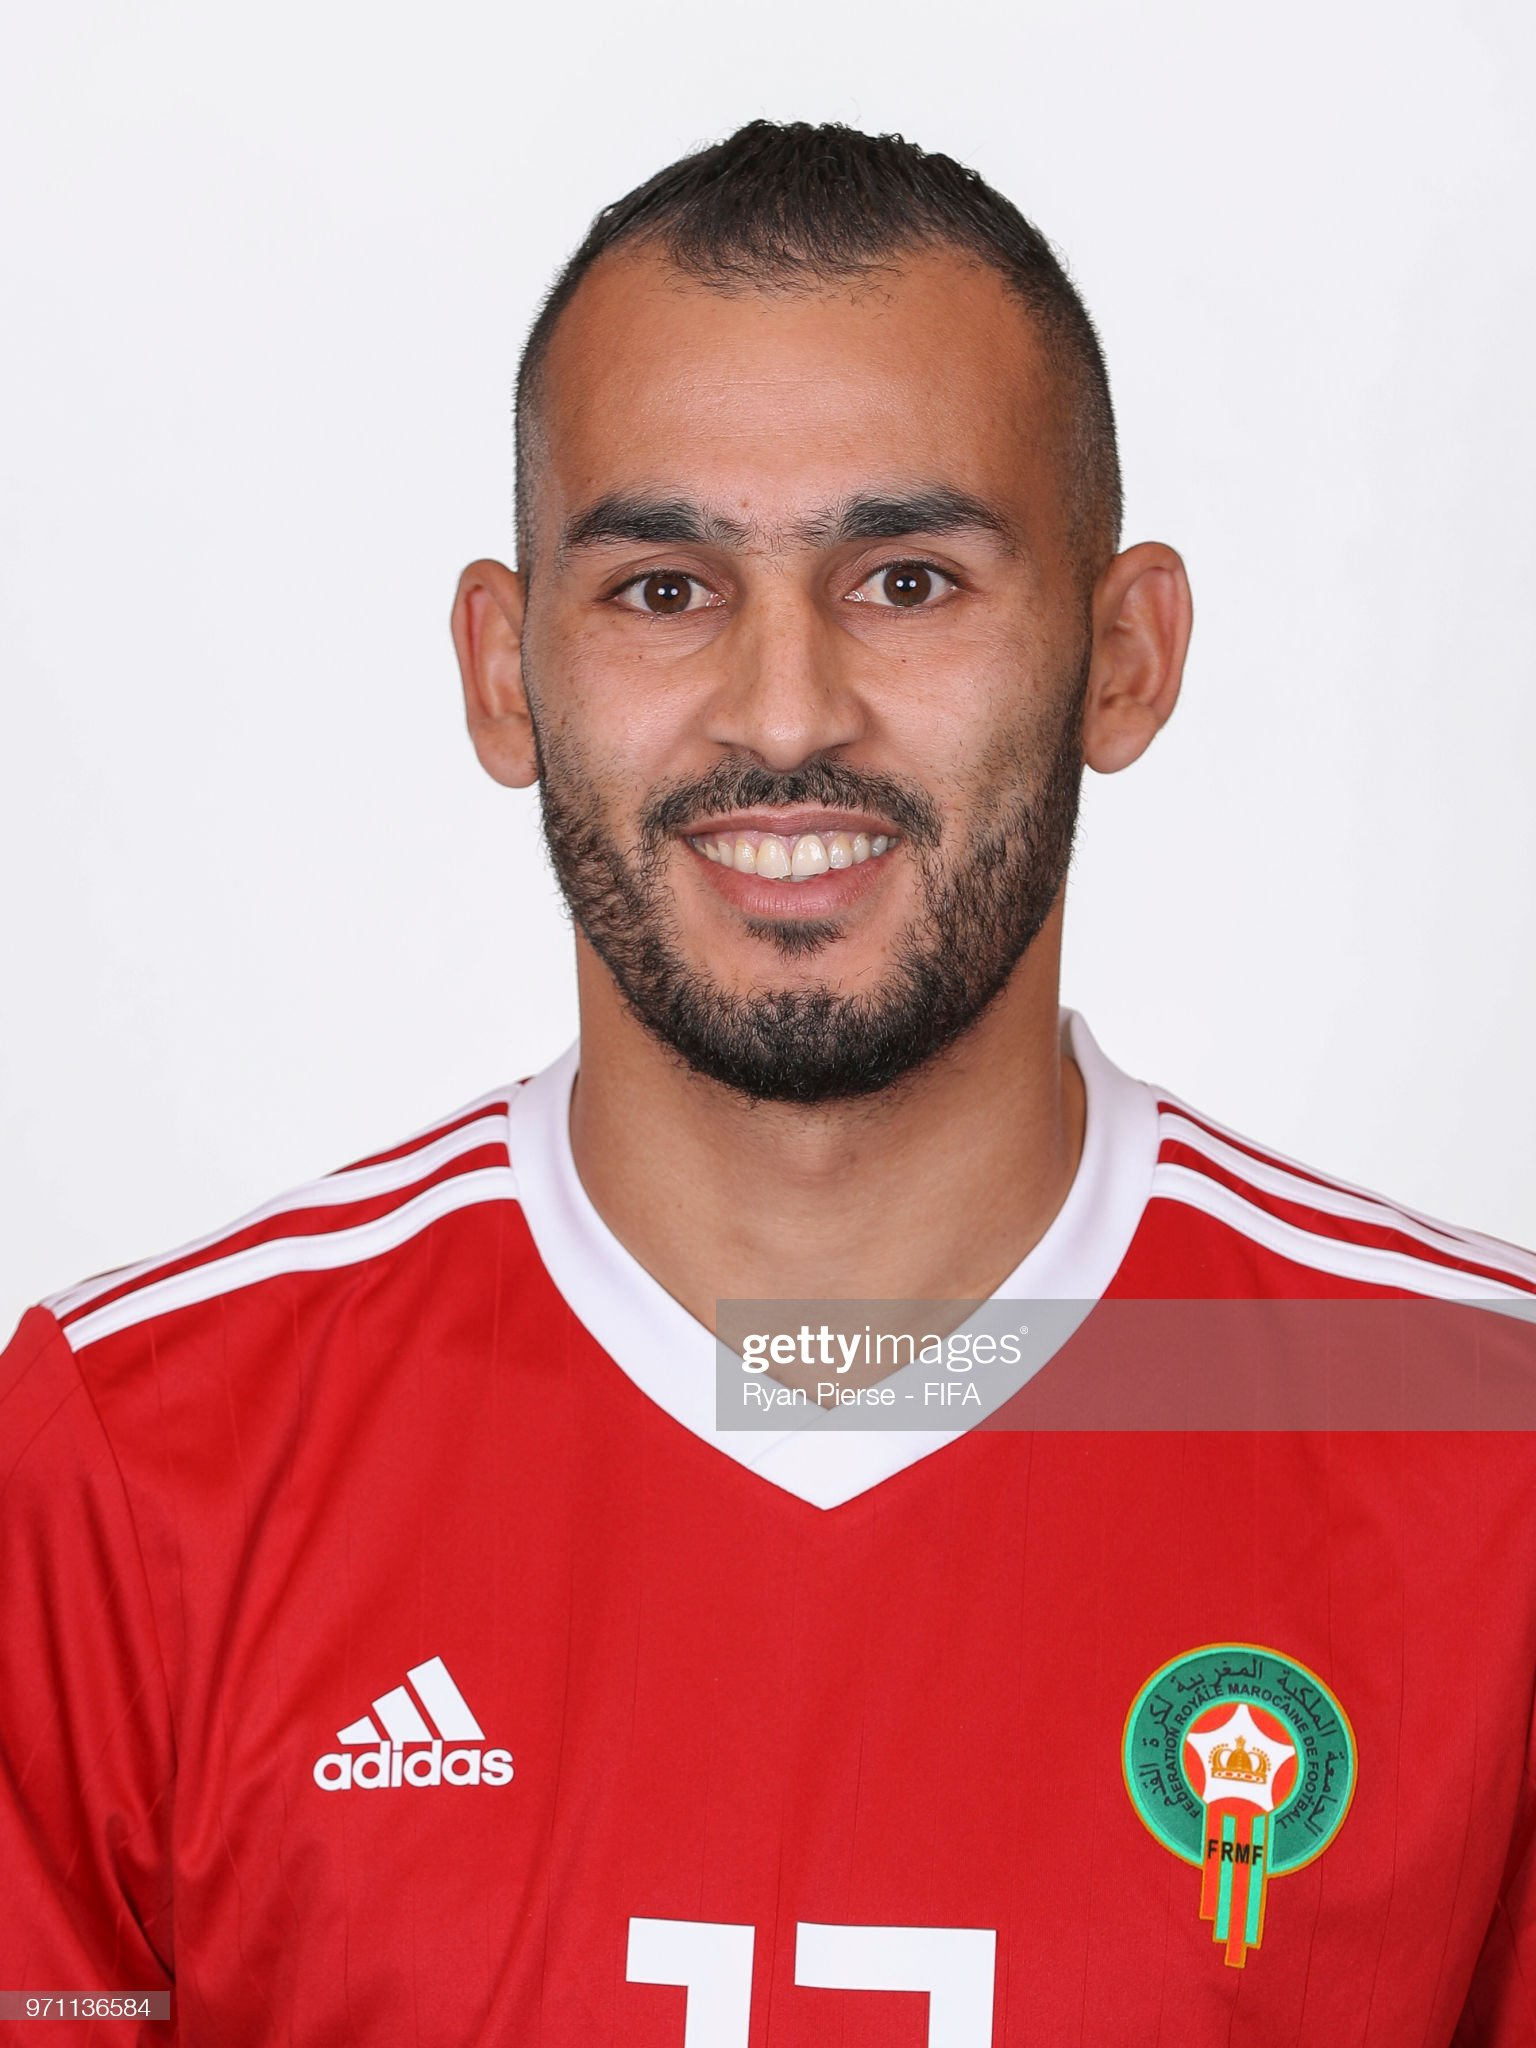 Norteafricanos Khalid-boutaib-of-morocco-poses-during-the-official-fifa-world-cup-picture-id971136584?s=2048x2048